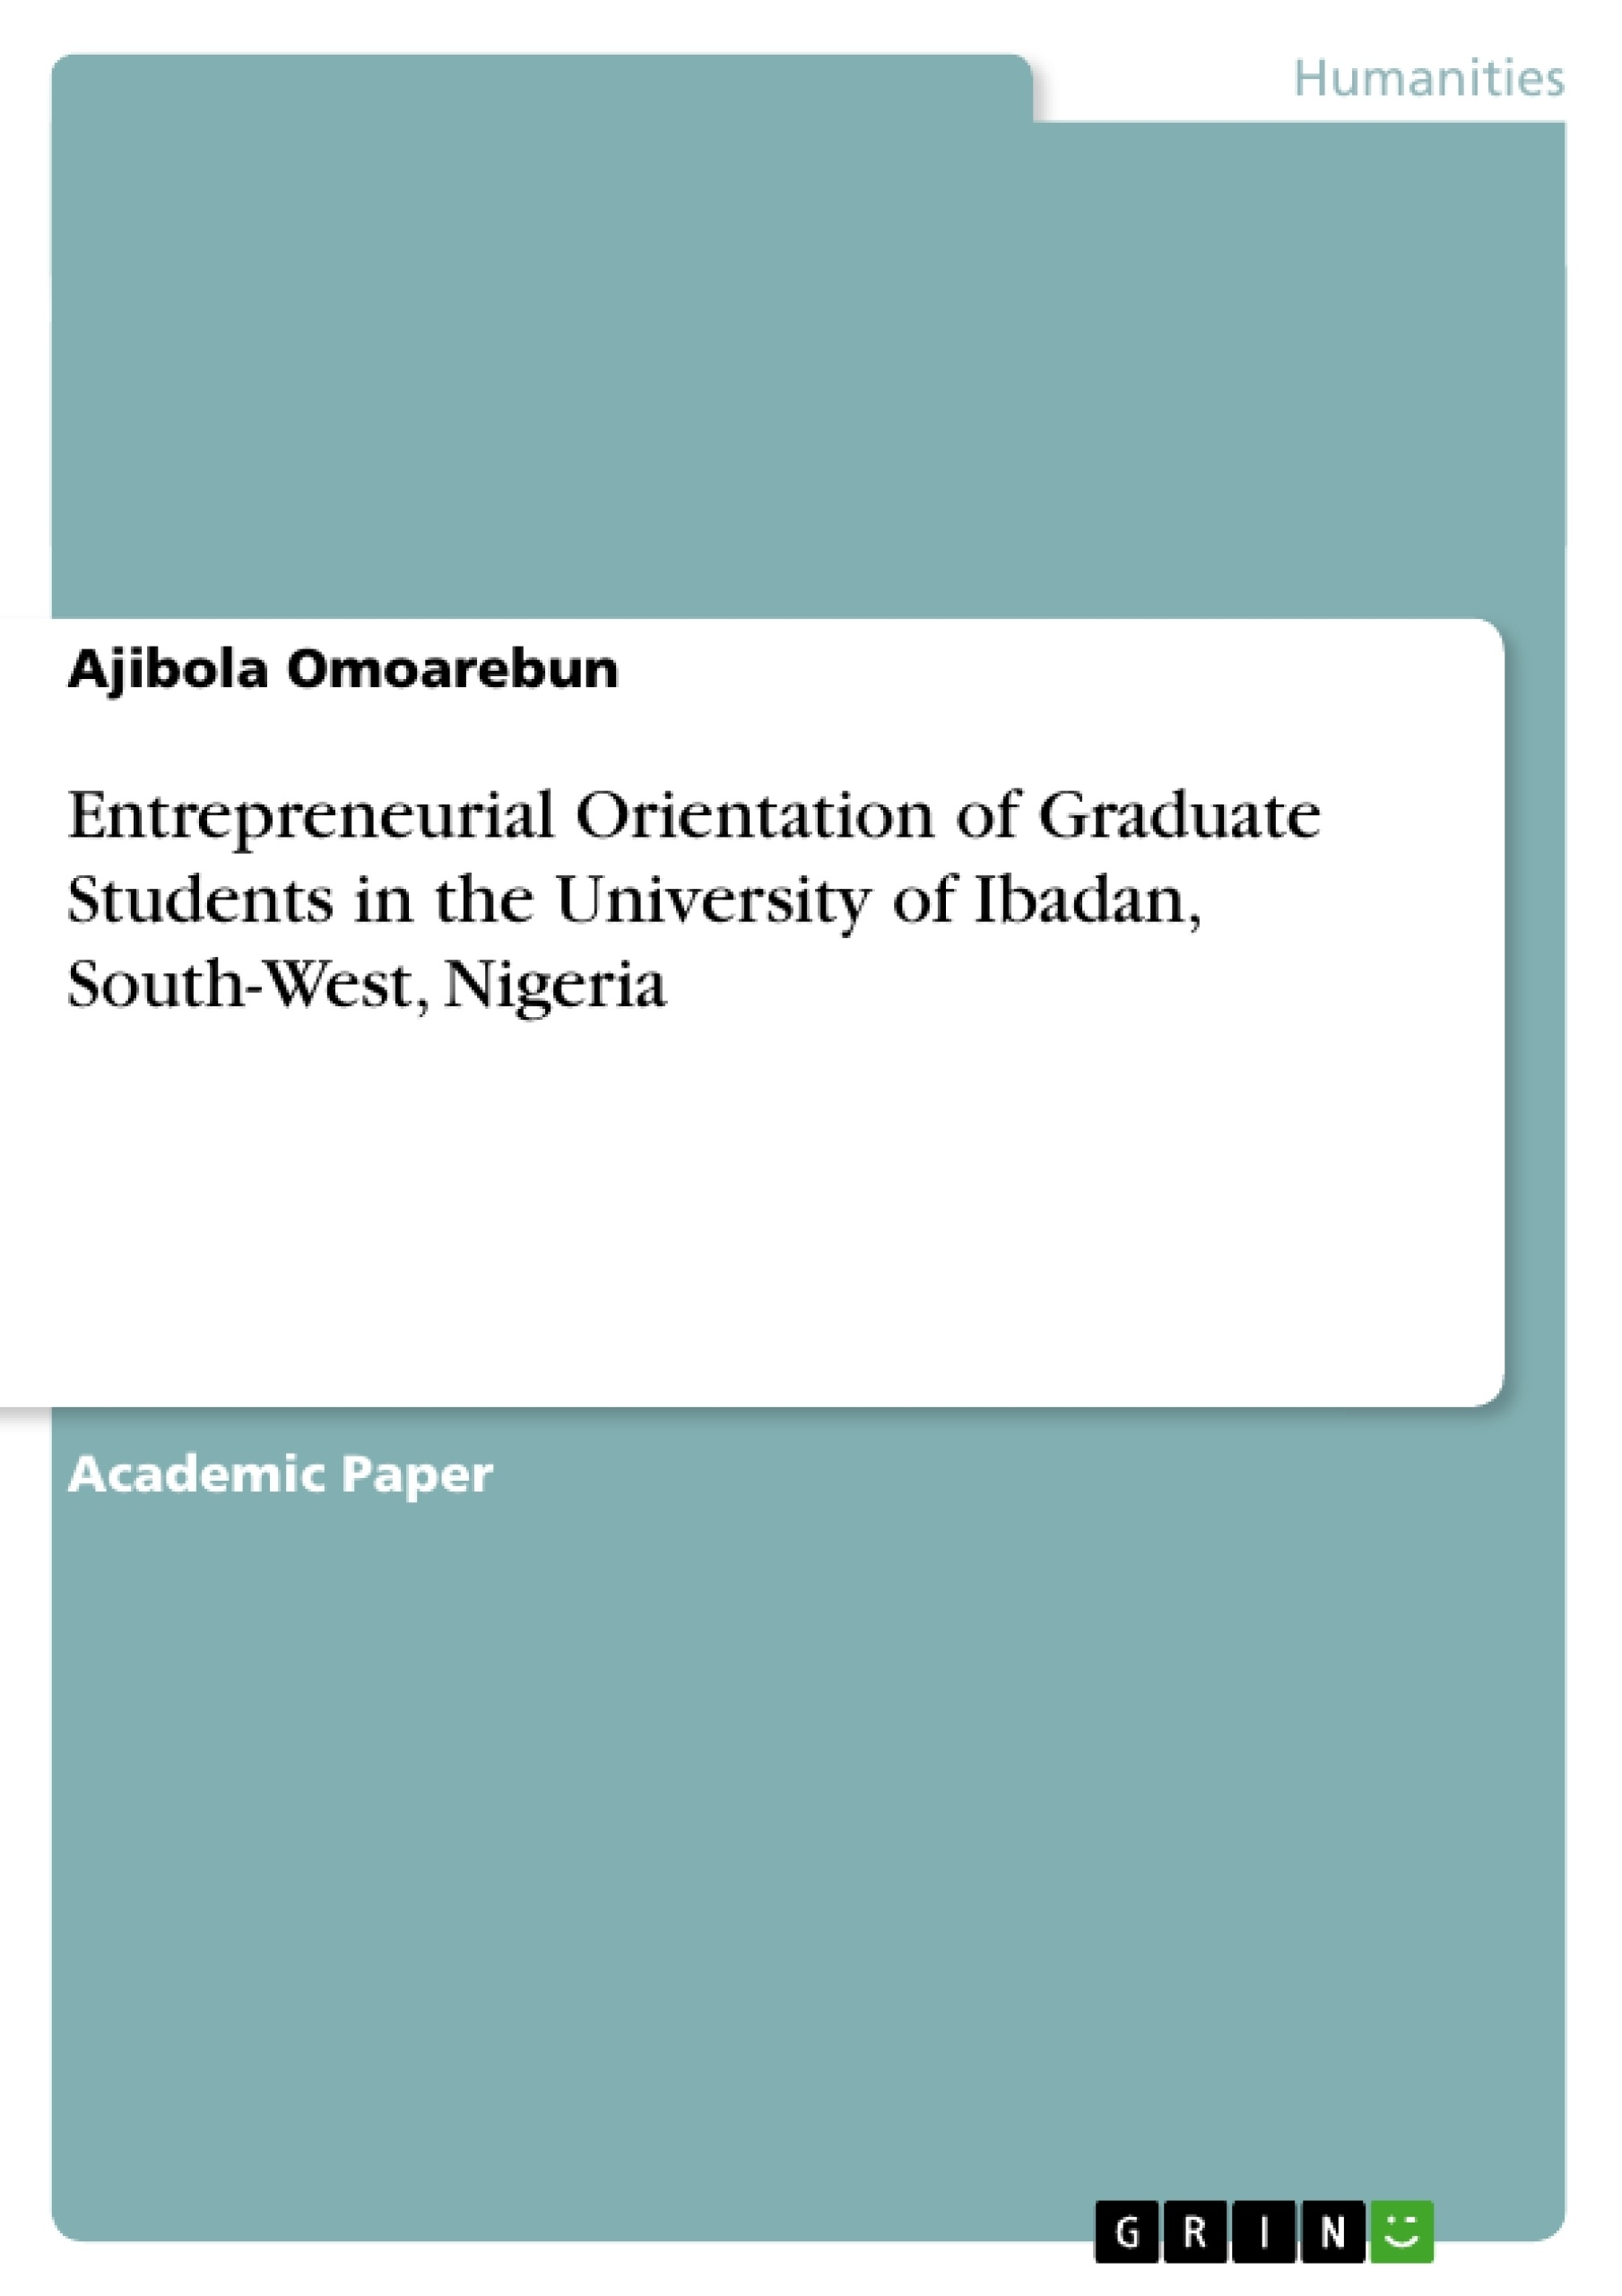 Title: Entrepreneurial Orientation of Graduate Students in the University of Ibadan, South-West, Nigeria